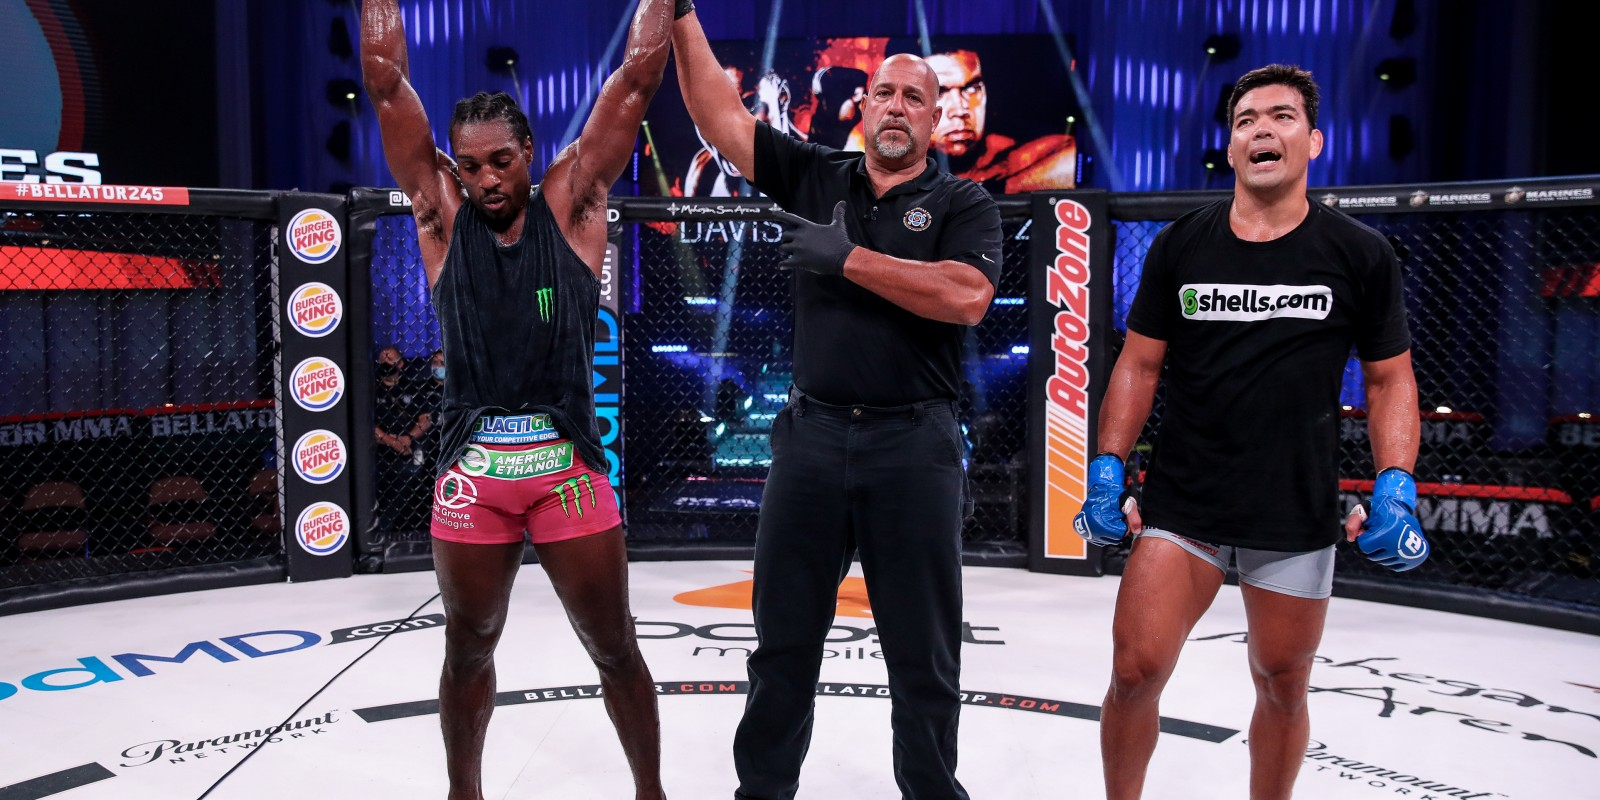 Images from Bellator 245 Davis vs. Machida on Friday September 11, 2020 at Mohegan Sun Arena in Uncasville, Connecticut.